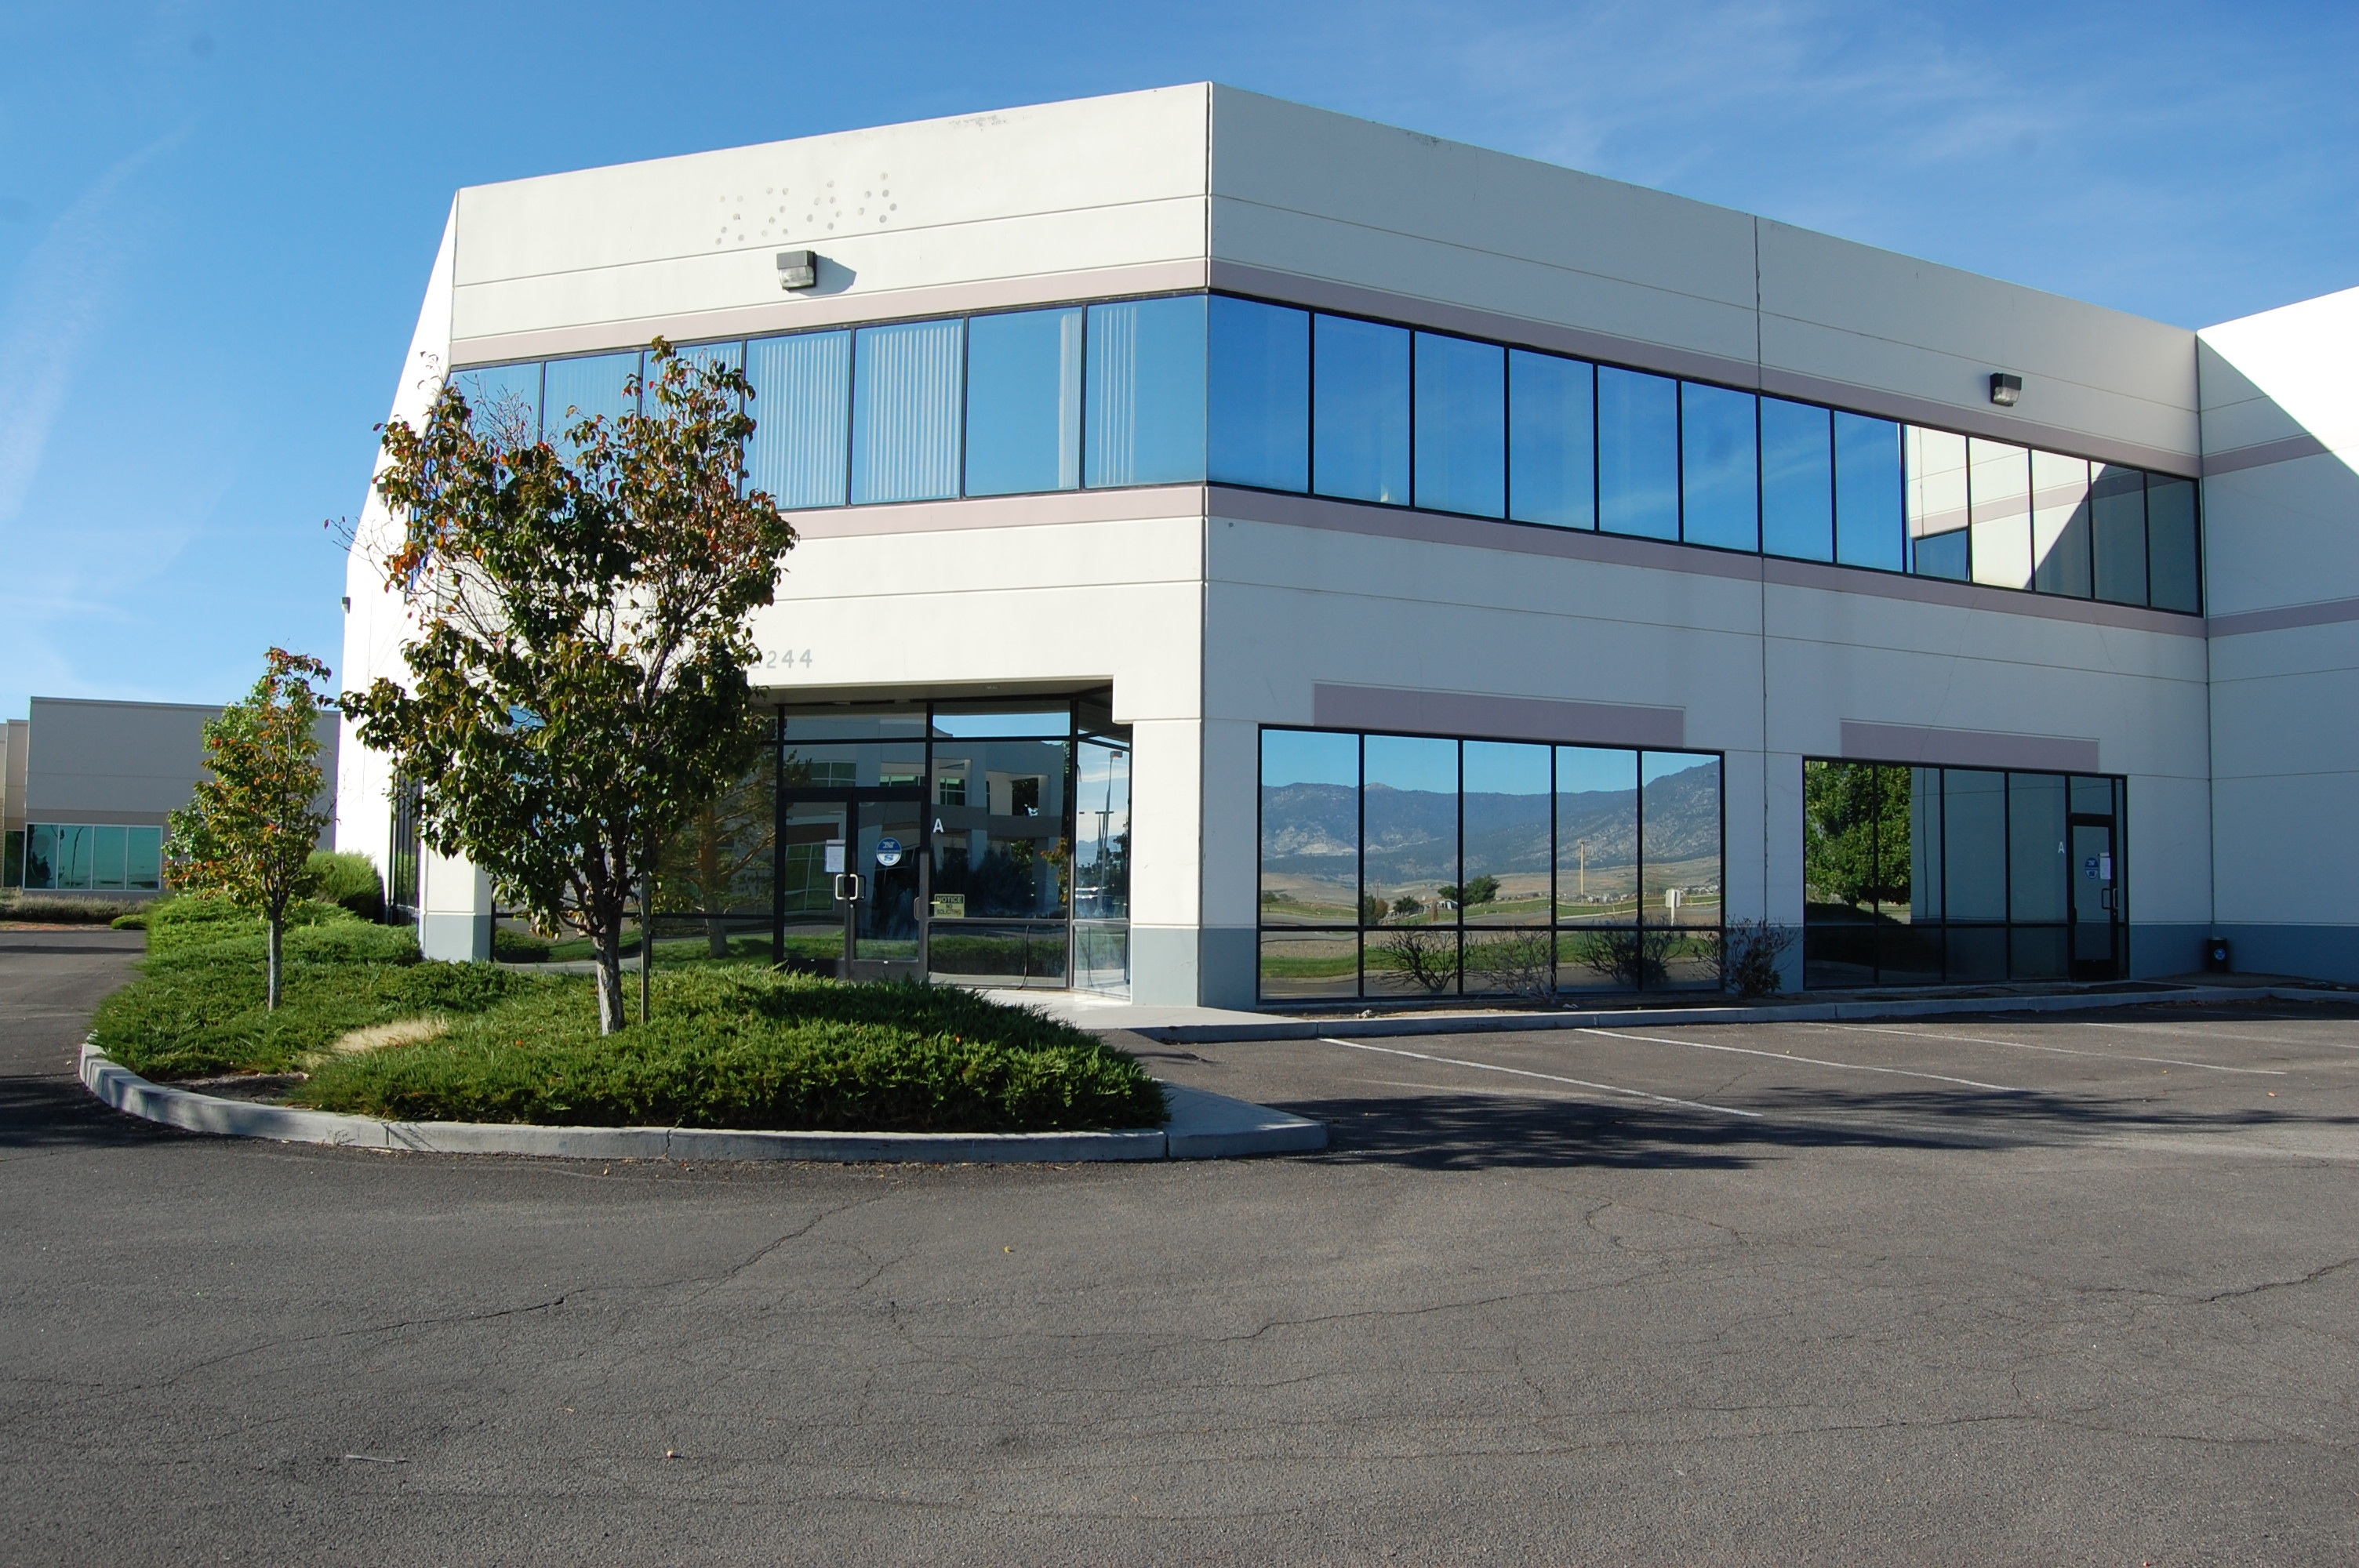 Industrial warehouse office building in minden nv - Office industrial ...